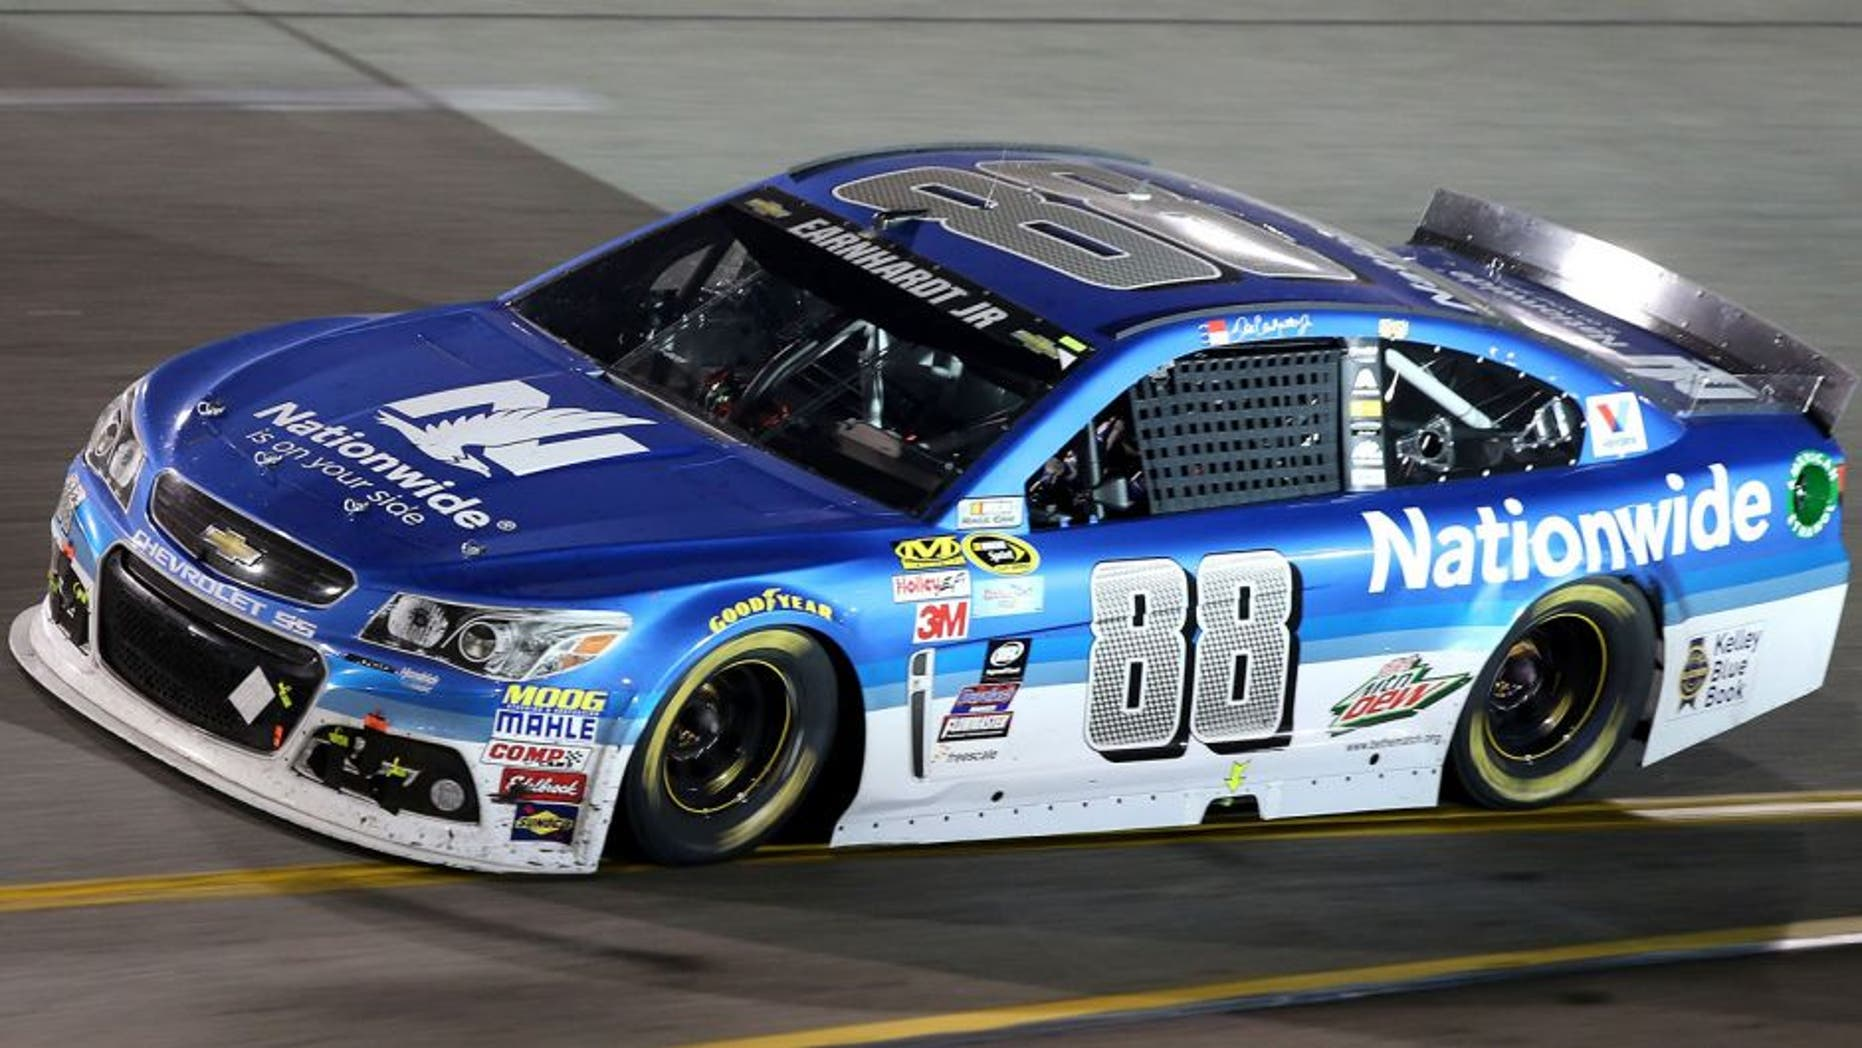 RICHMOND, VA - SEPTEMBER 12: Dale Earnhardt Jr., driver of the #88 Nationwide Chevrolet, races during the NASCAR Sprint Cup Series Federated Auto Parts 400 at Richmond International Raceway on September 12, 2015 in Richmond, Virginia. (Photo by Jerry Markland/Getty Images)